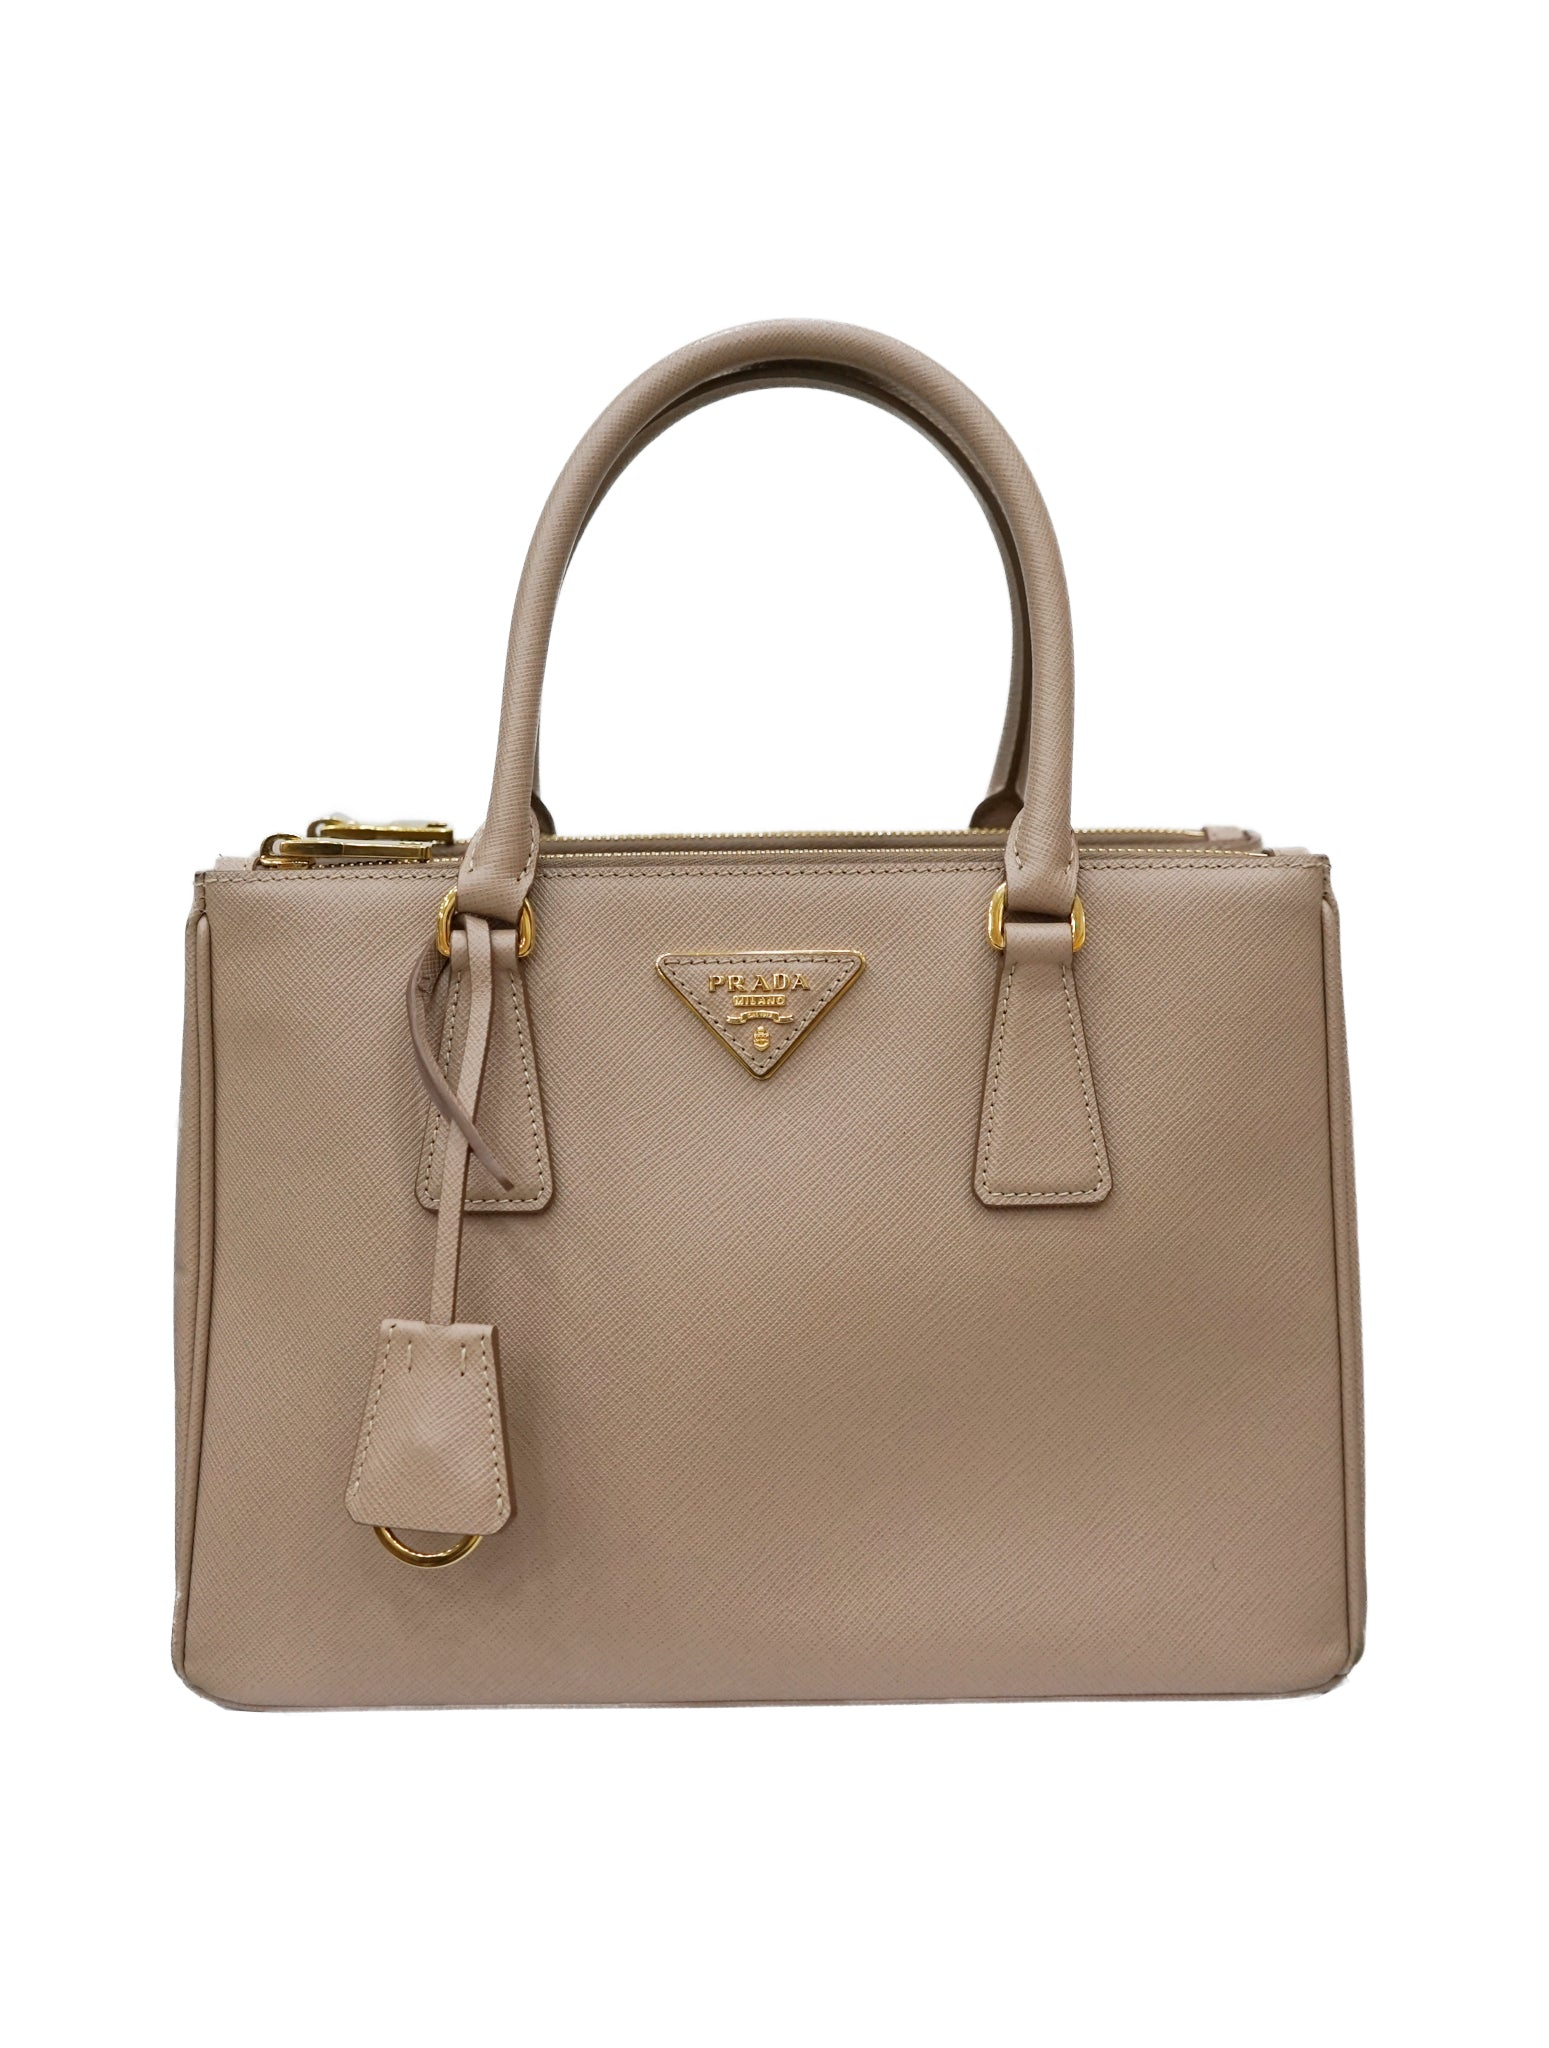 SAFFIANO LUX LEATHER DOUBLE ZIP TOTE BAG